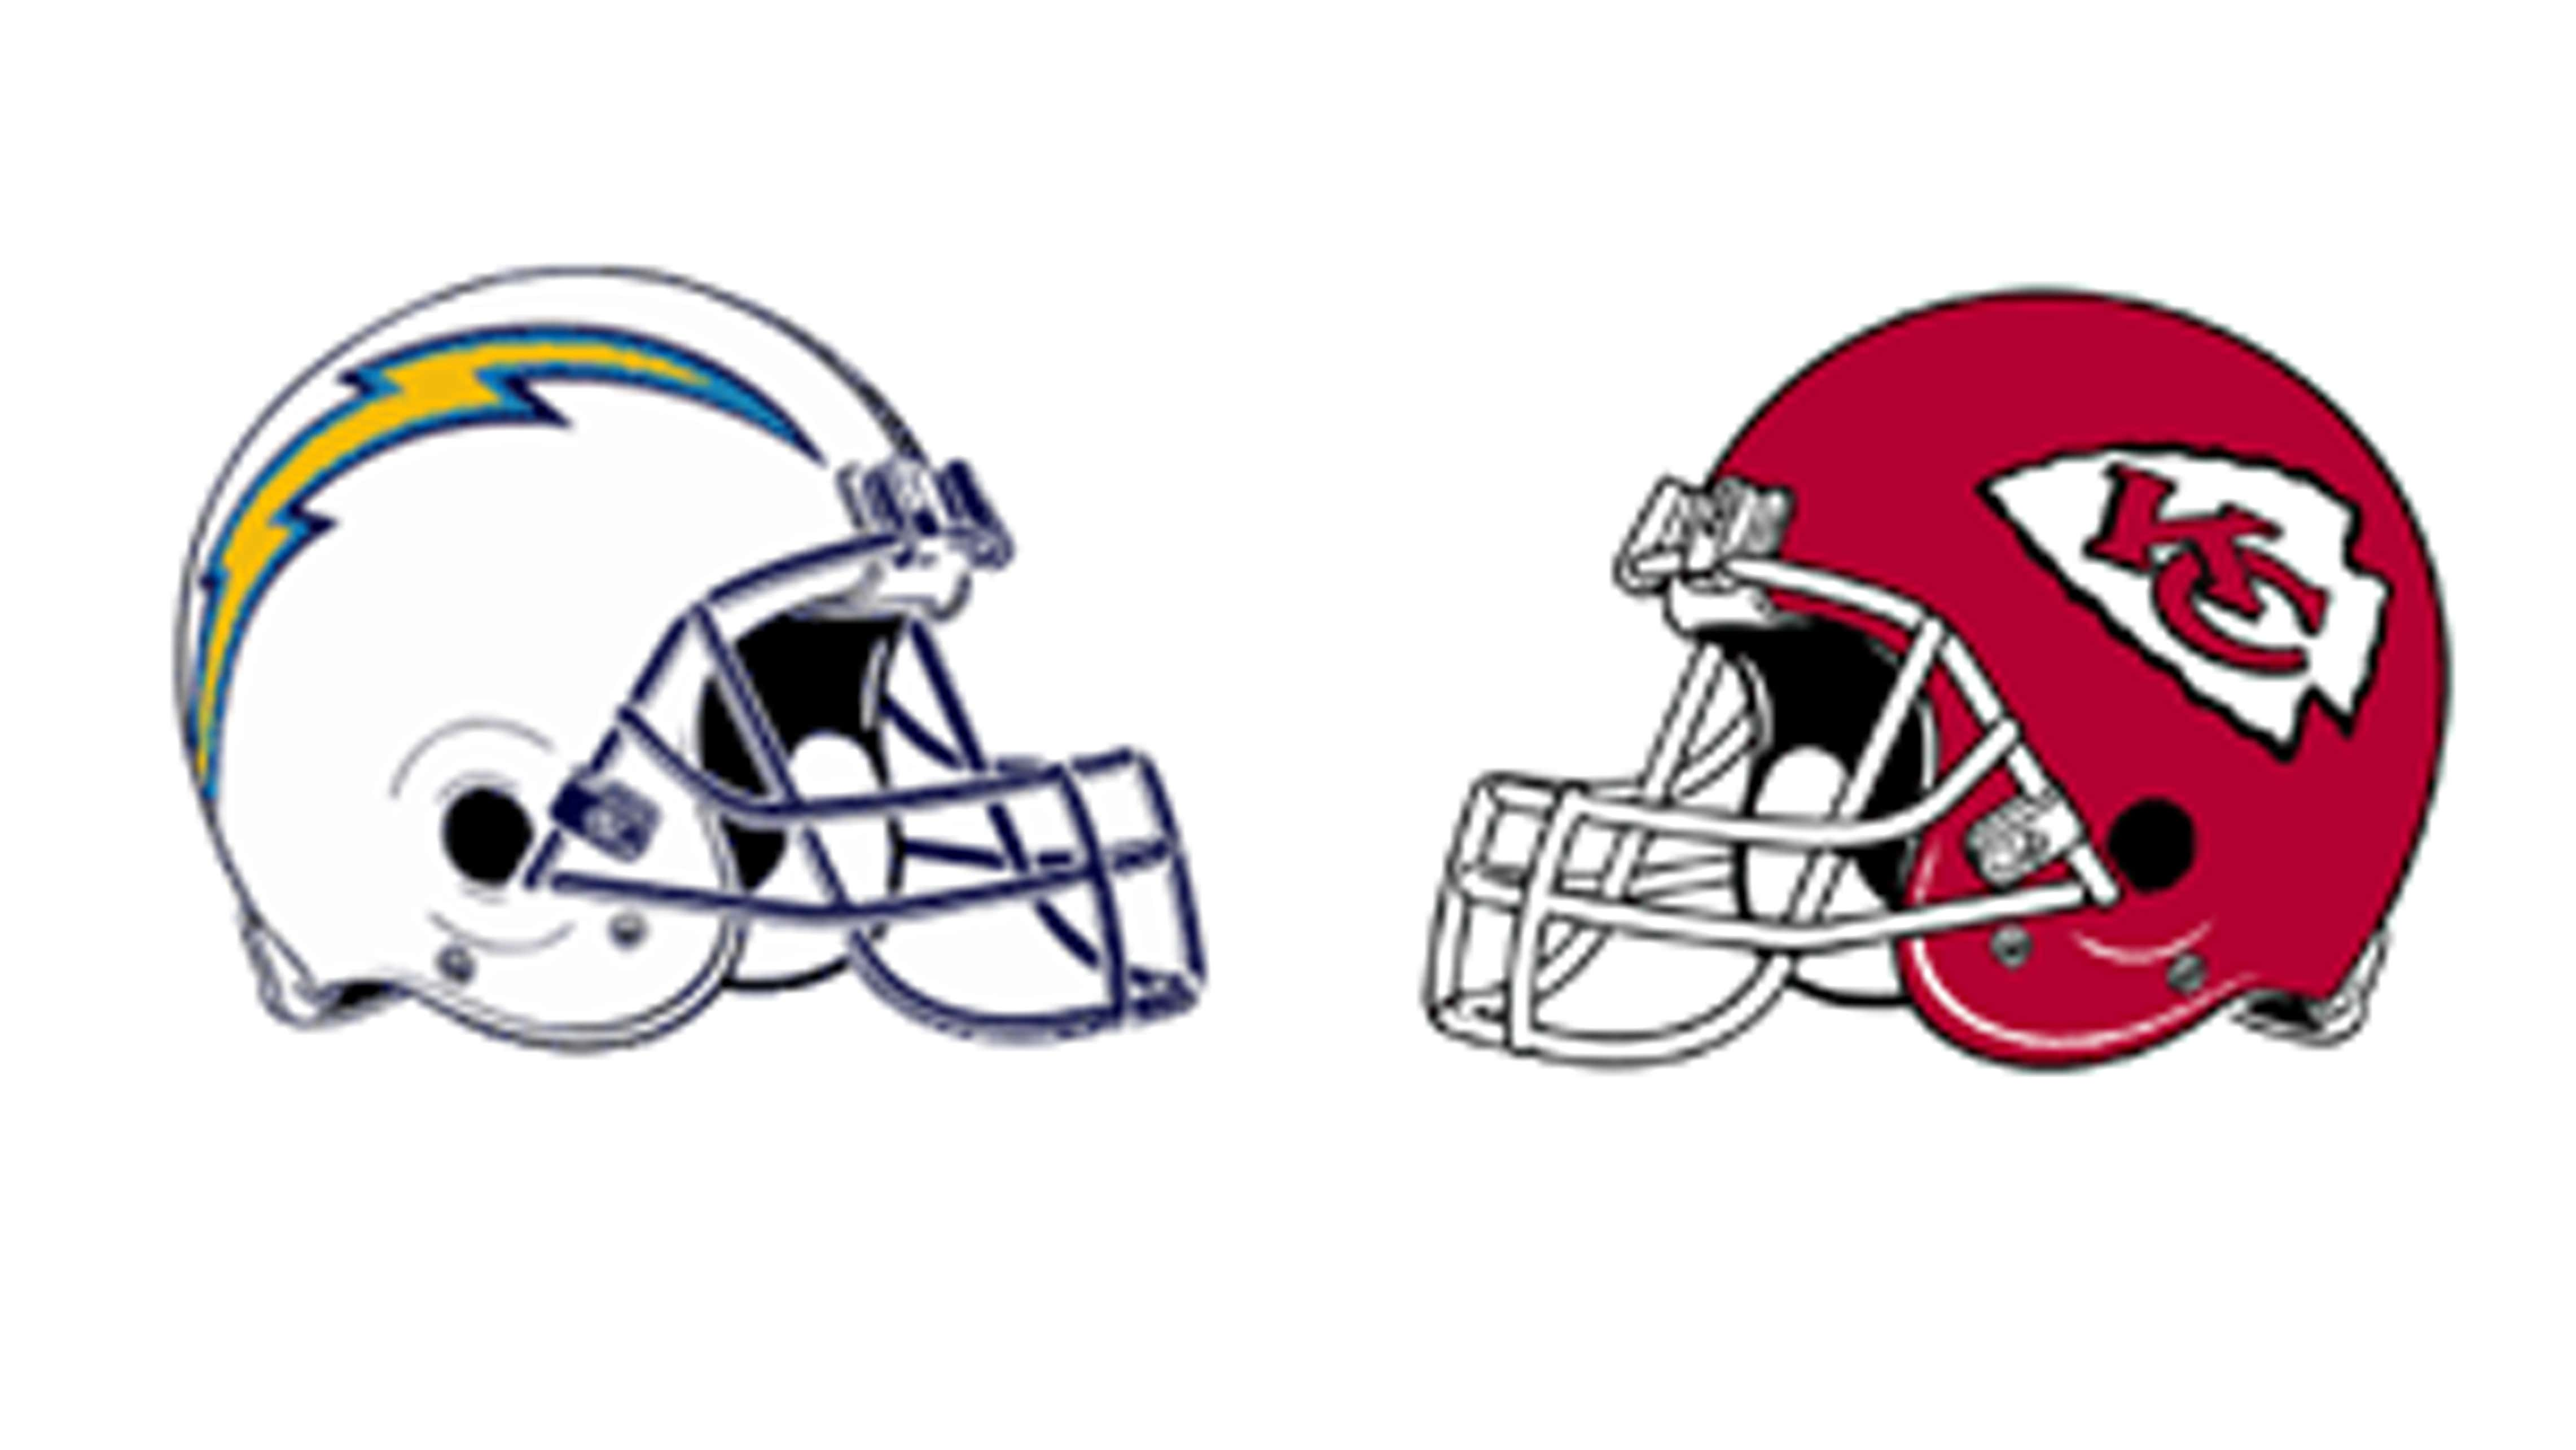 Forecaster Franks Nfl Week 15 Preview Barstool Sports Show Me A Diagram Of The Human Heart Here Are Bunch Lac Kc